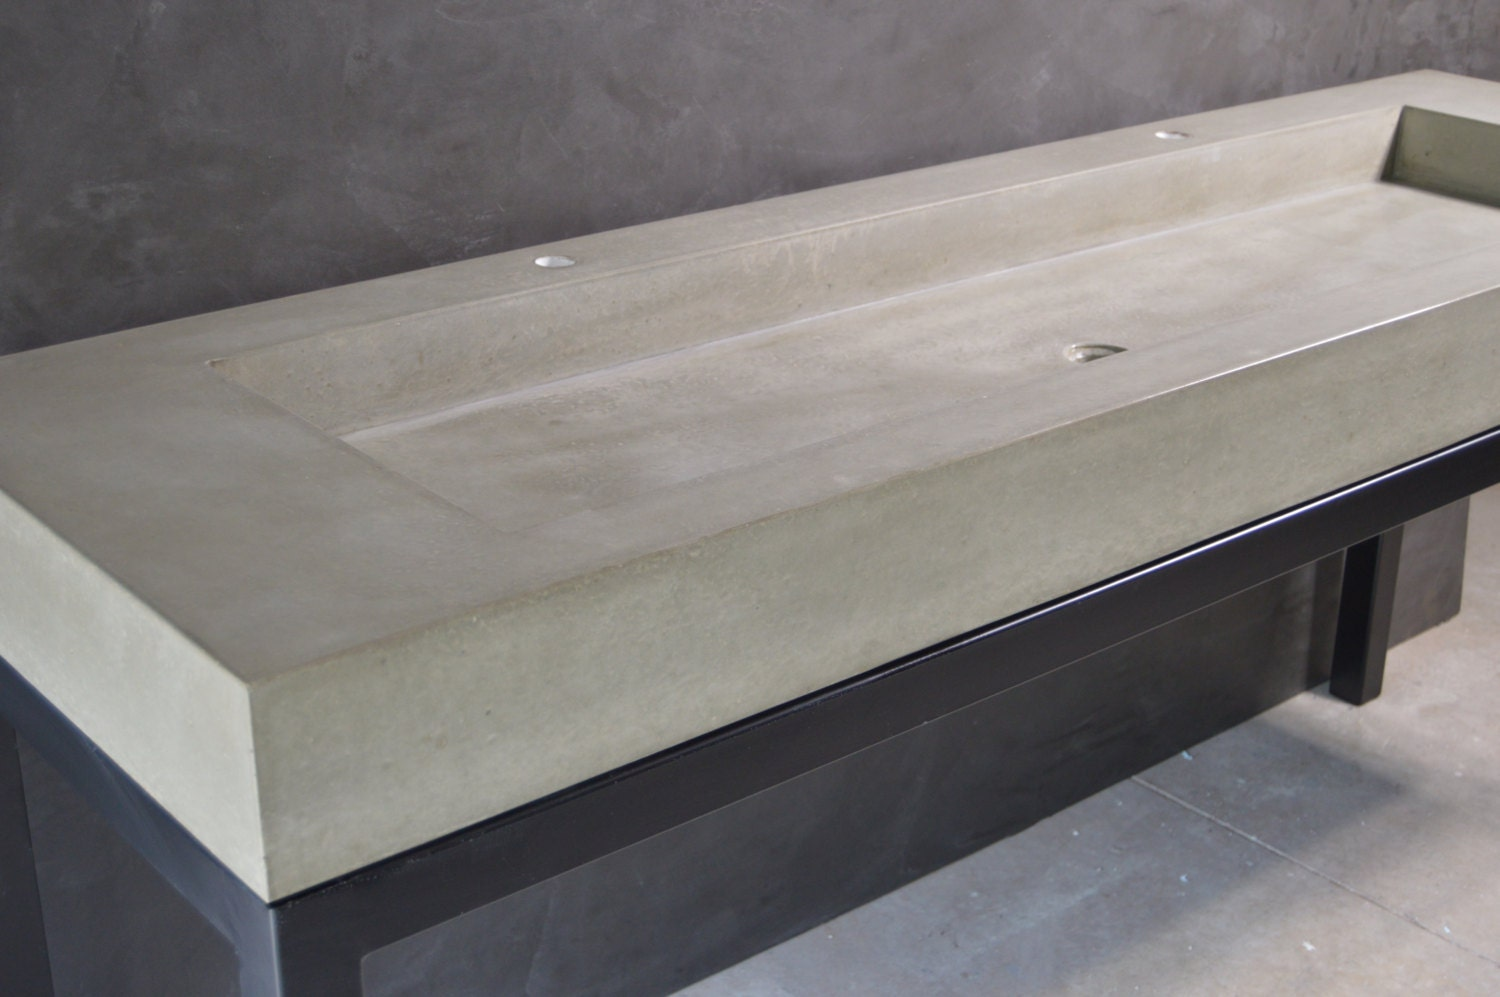 Concrete Trough Sink with Base by stogsconcretedesign on Etsy